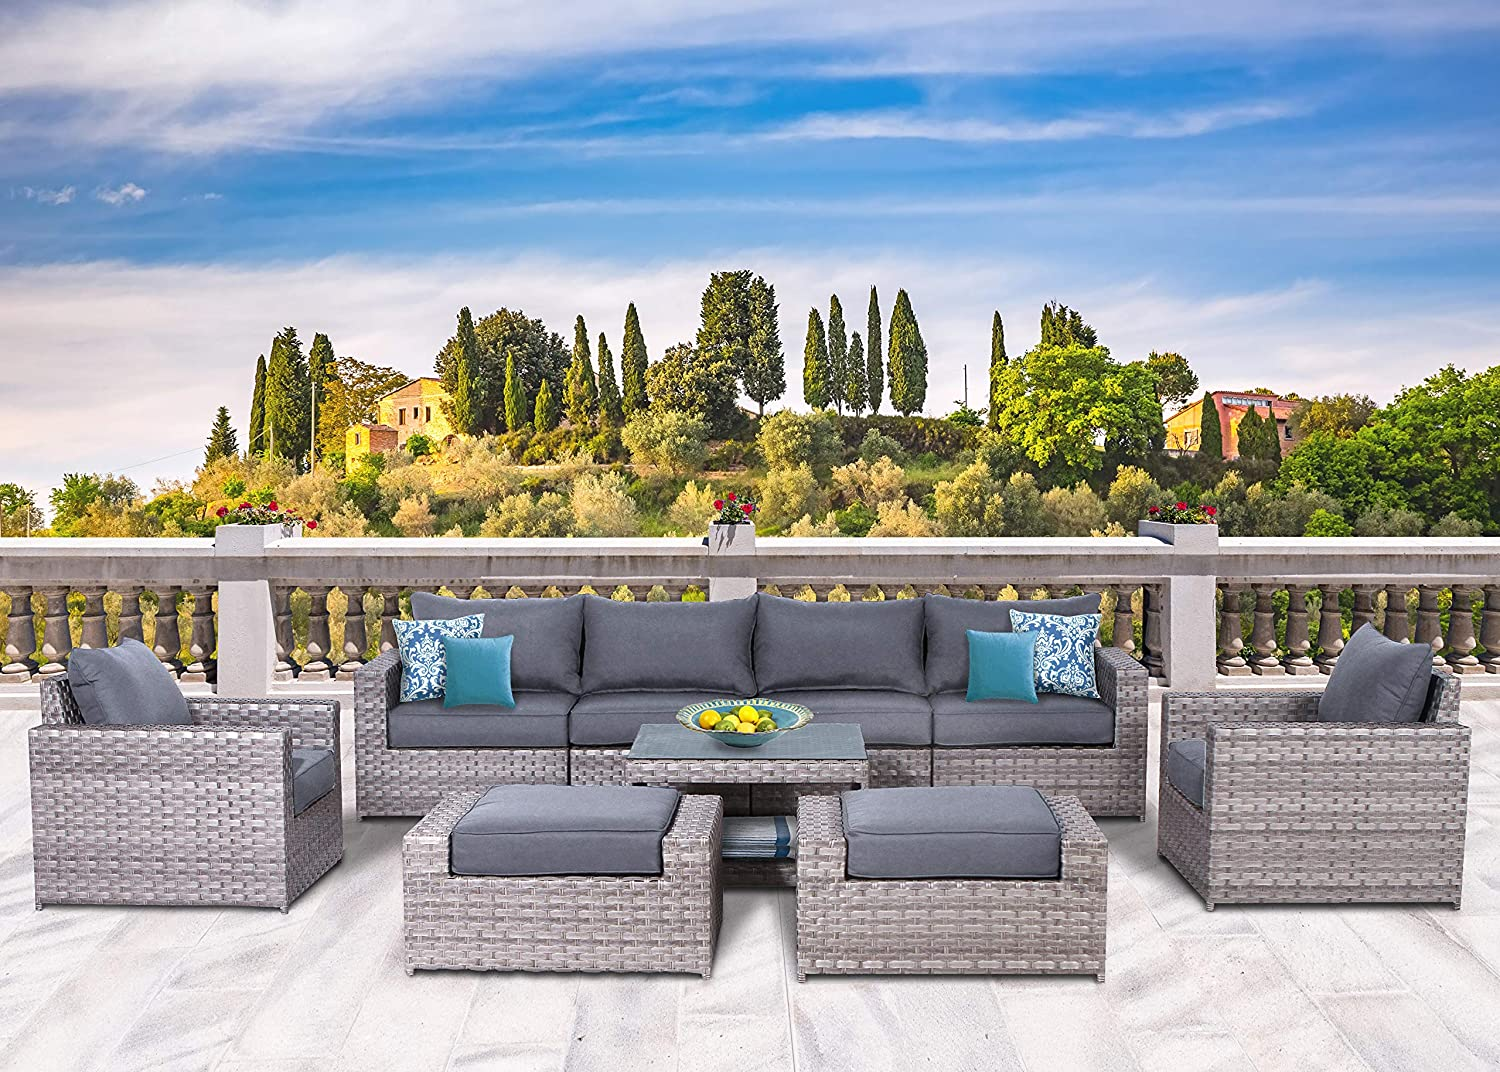 SunHaven Resin Wicker Outdoor Patio Furniture Set - 9 Piece Conversation Sectional Premium All Weather Gray Rattan Wicker, Aluminum Frame with Deluxe Fade Resistant Olefin Cushion (Kensington 9 Pcs)